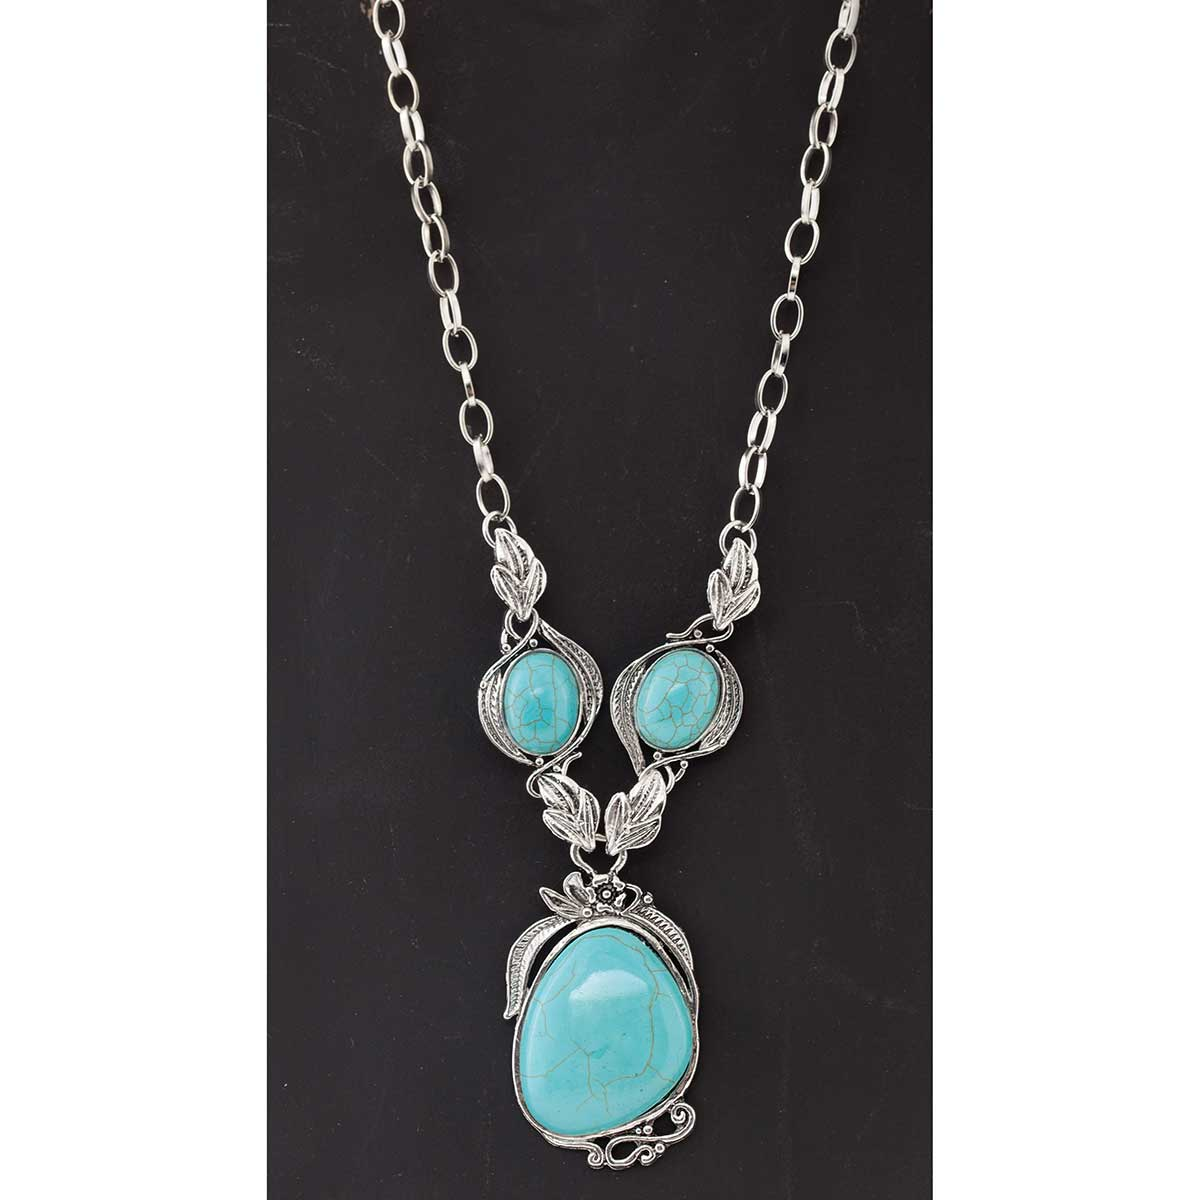 Antique Silver and Turquoise 3 Oval Necklace